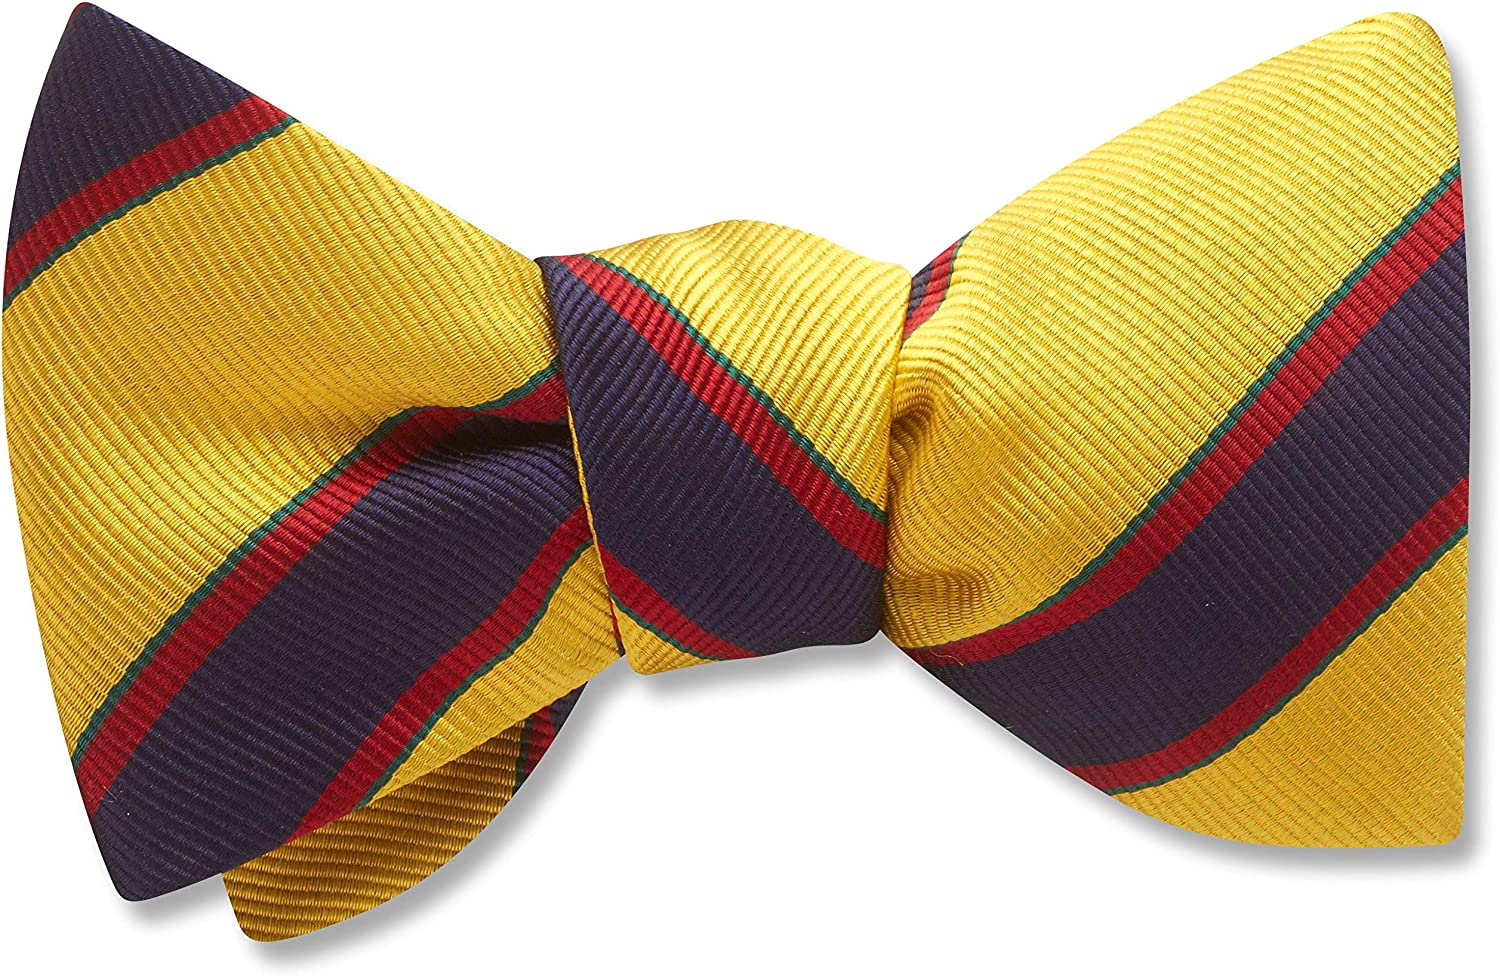 Goodwin Yellow/Gold Striped, Men's Bow Tie, Handmade in the USA